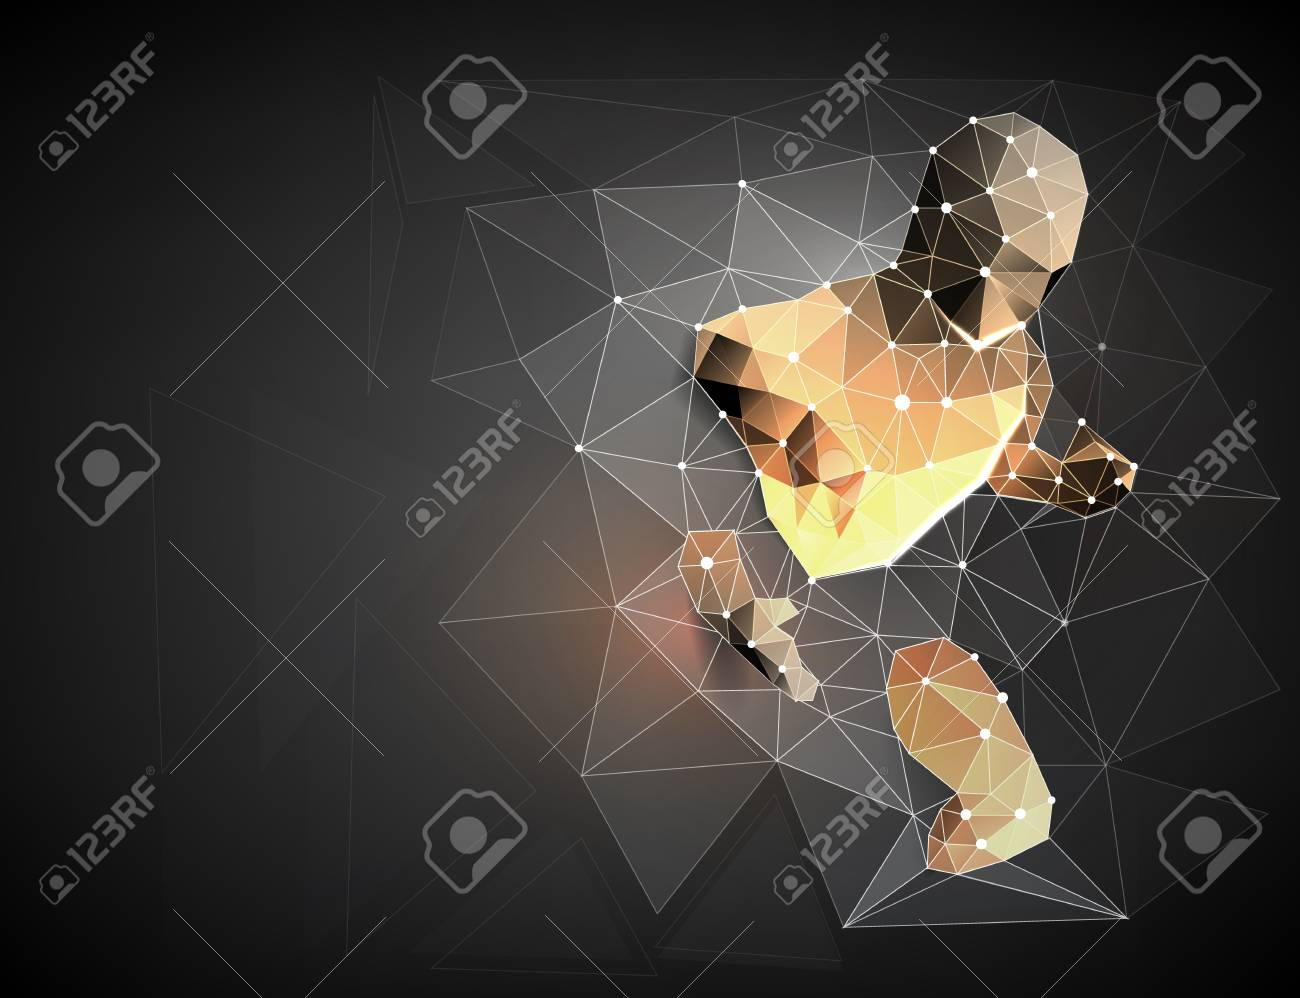 Cyborg. Robot. A man who has rushed out of the net, Network connection turned into. Symbolizing the meaning of artificial intelligence and big data. vector illustration - 110774235